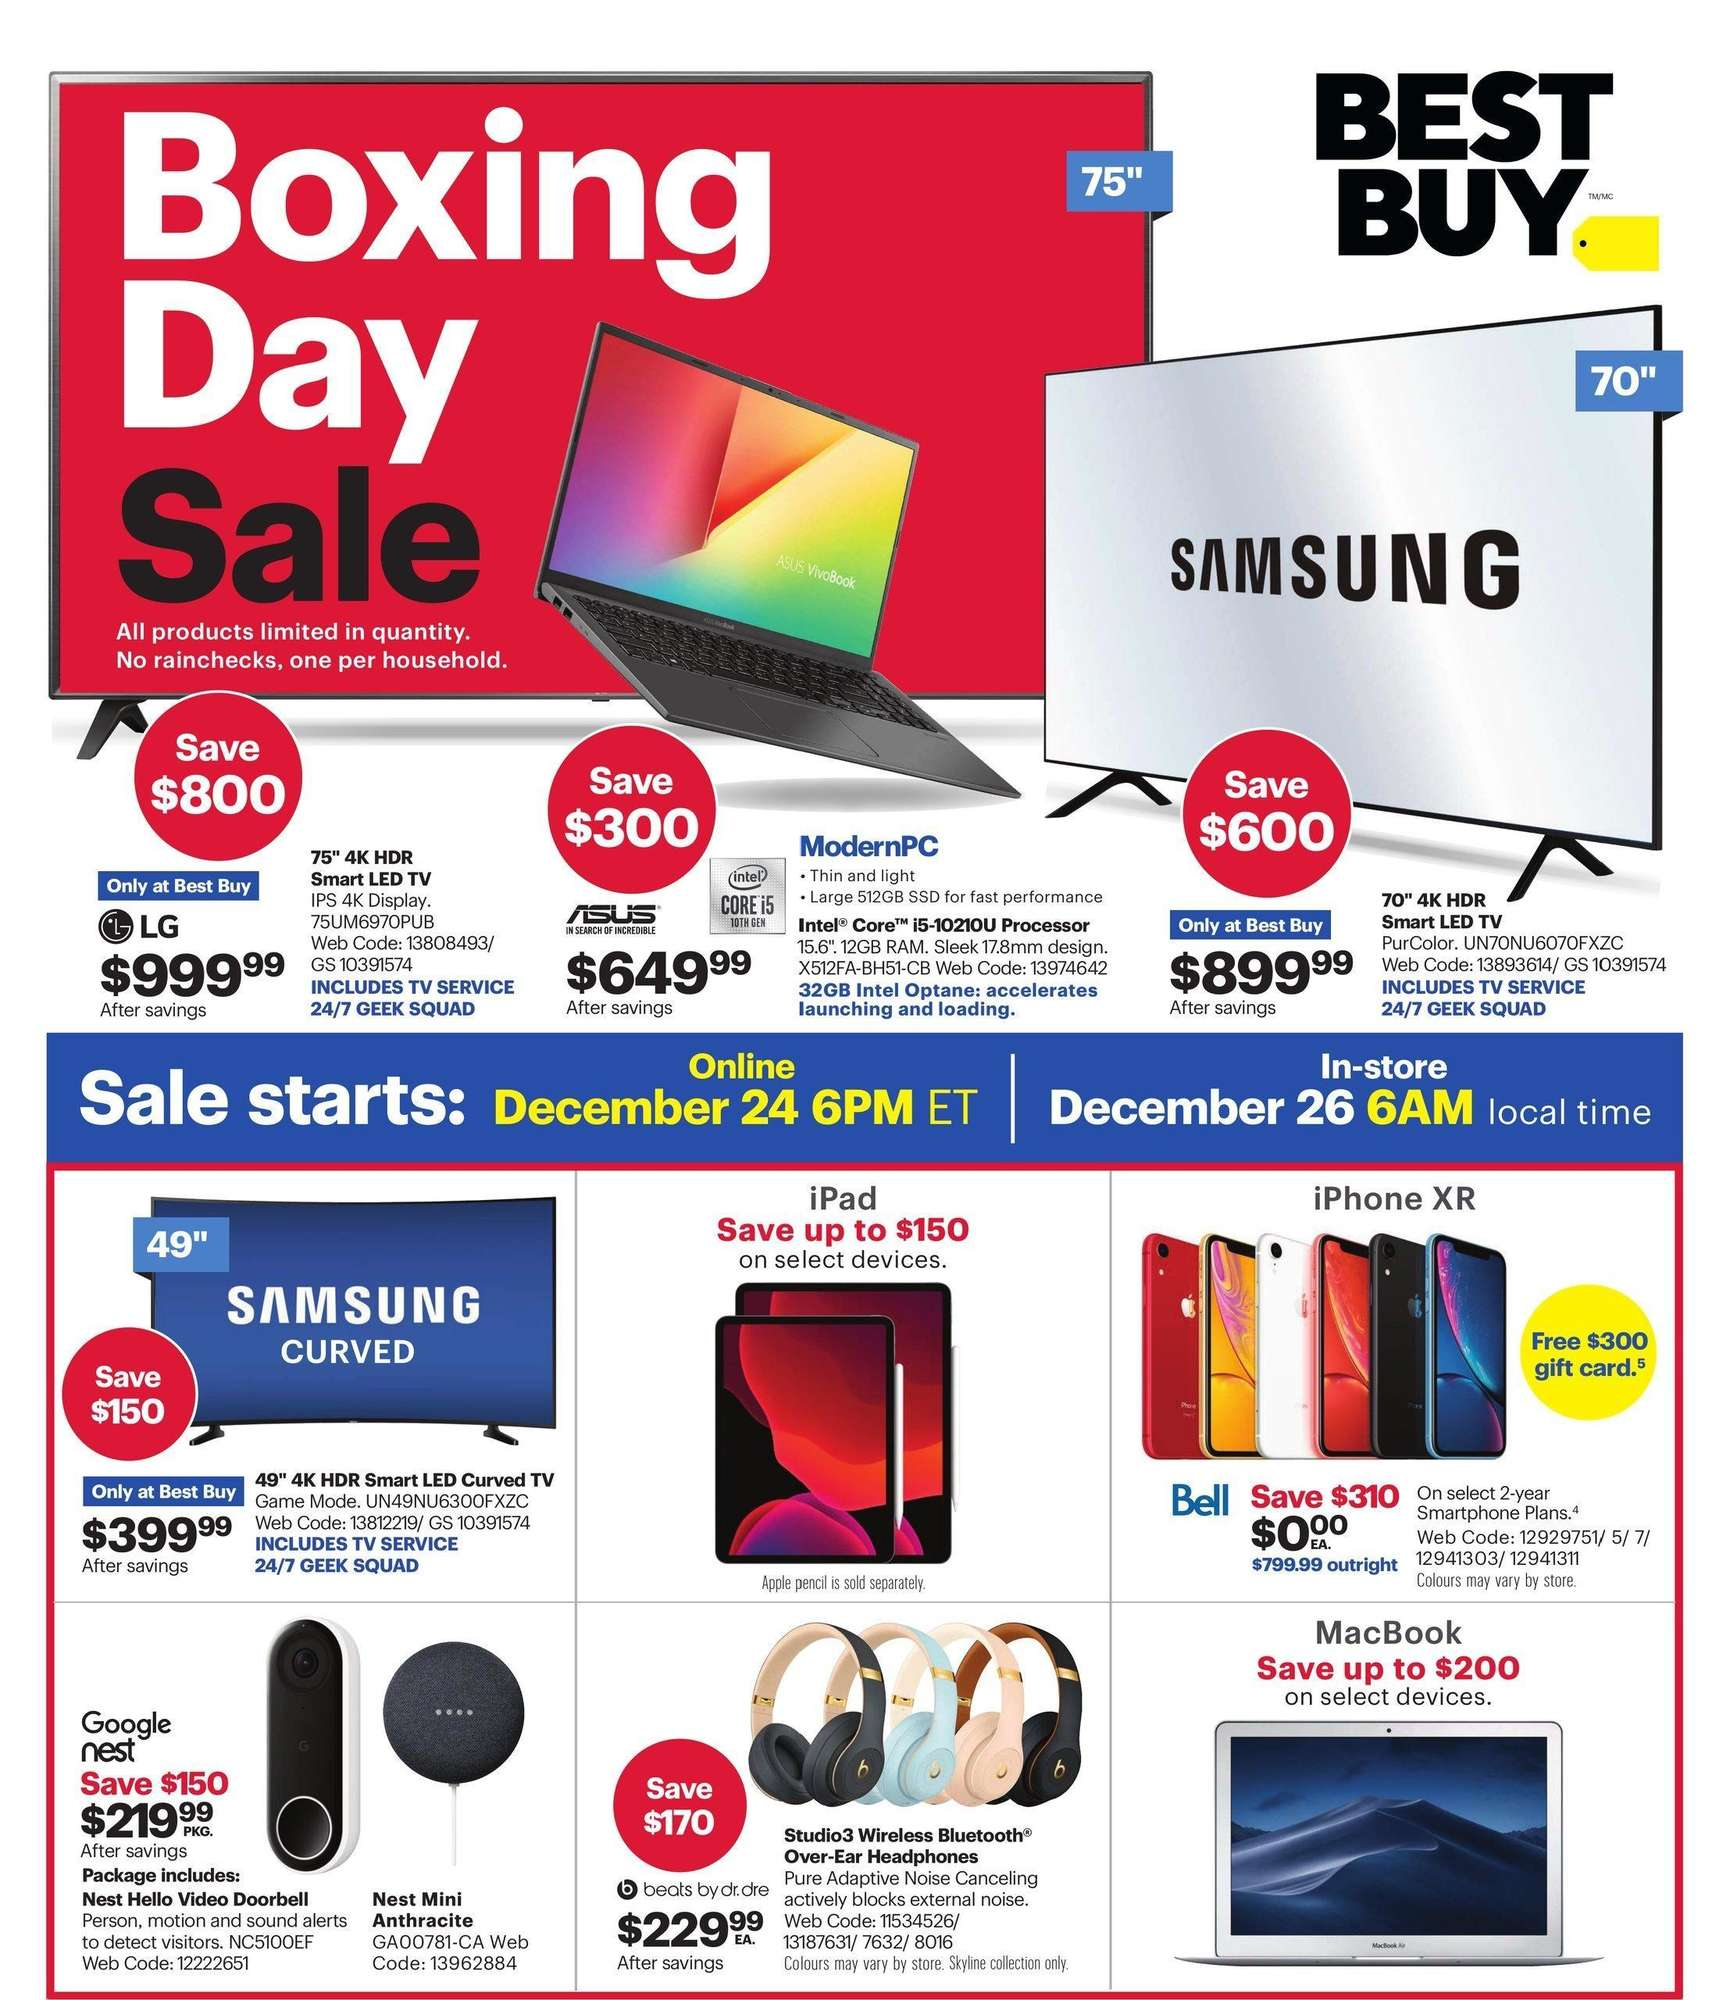 Best Buy Boxing Day Flyer Sale 2020